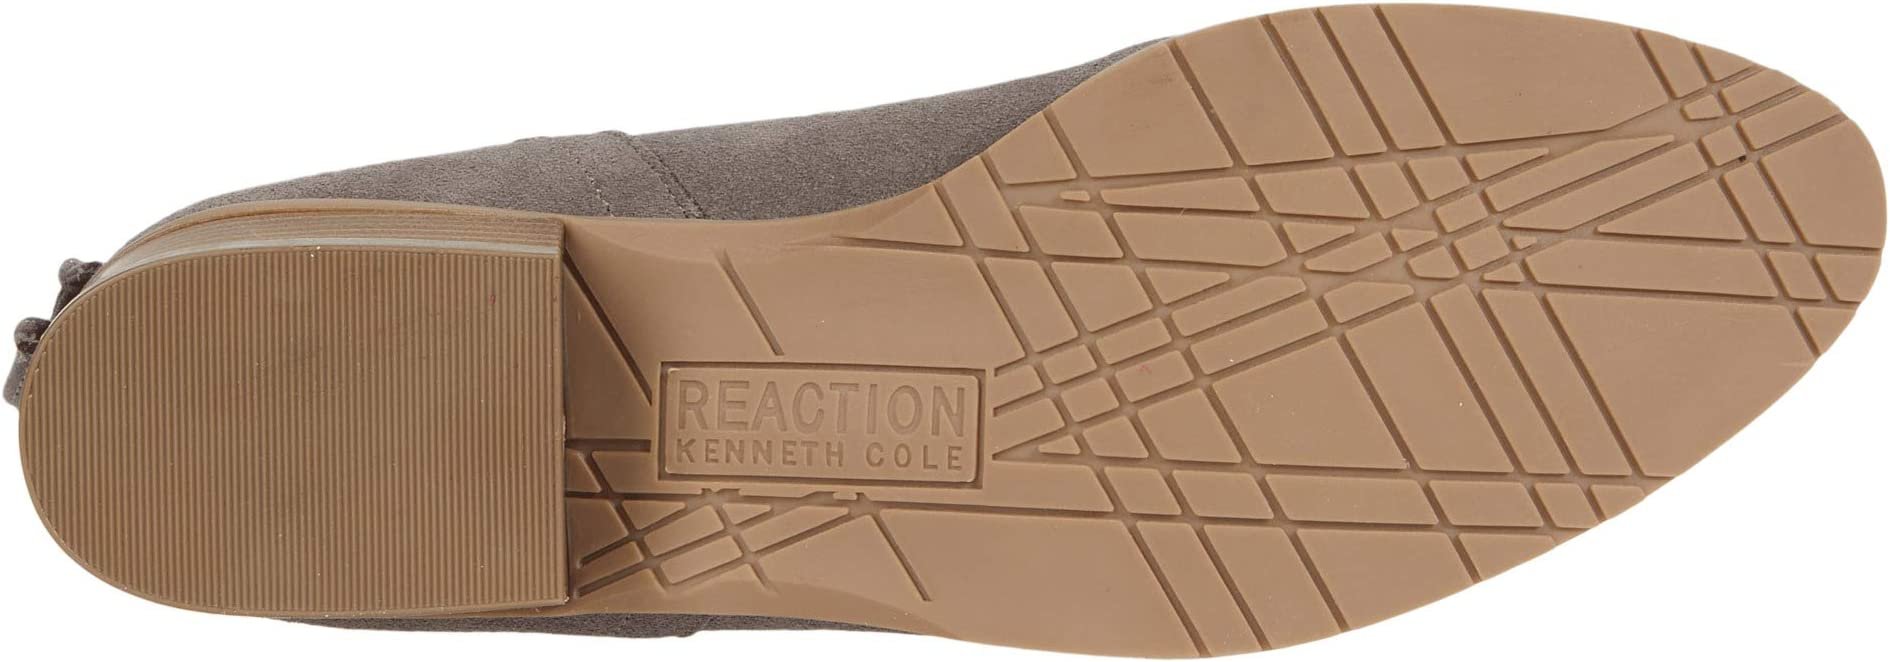 Kenneth Cole Reaction Side Skip | Women's shoes | 2020 Newest